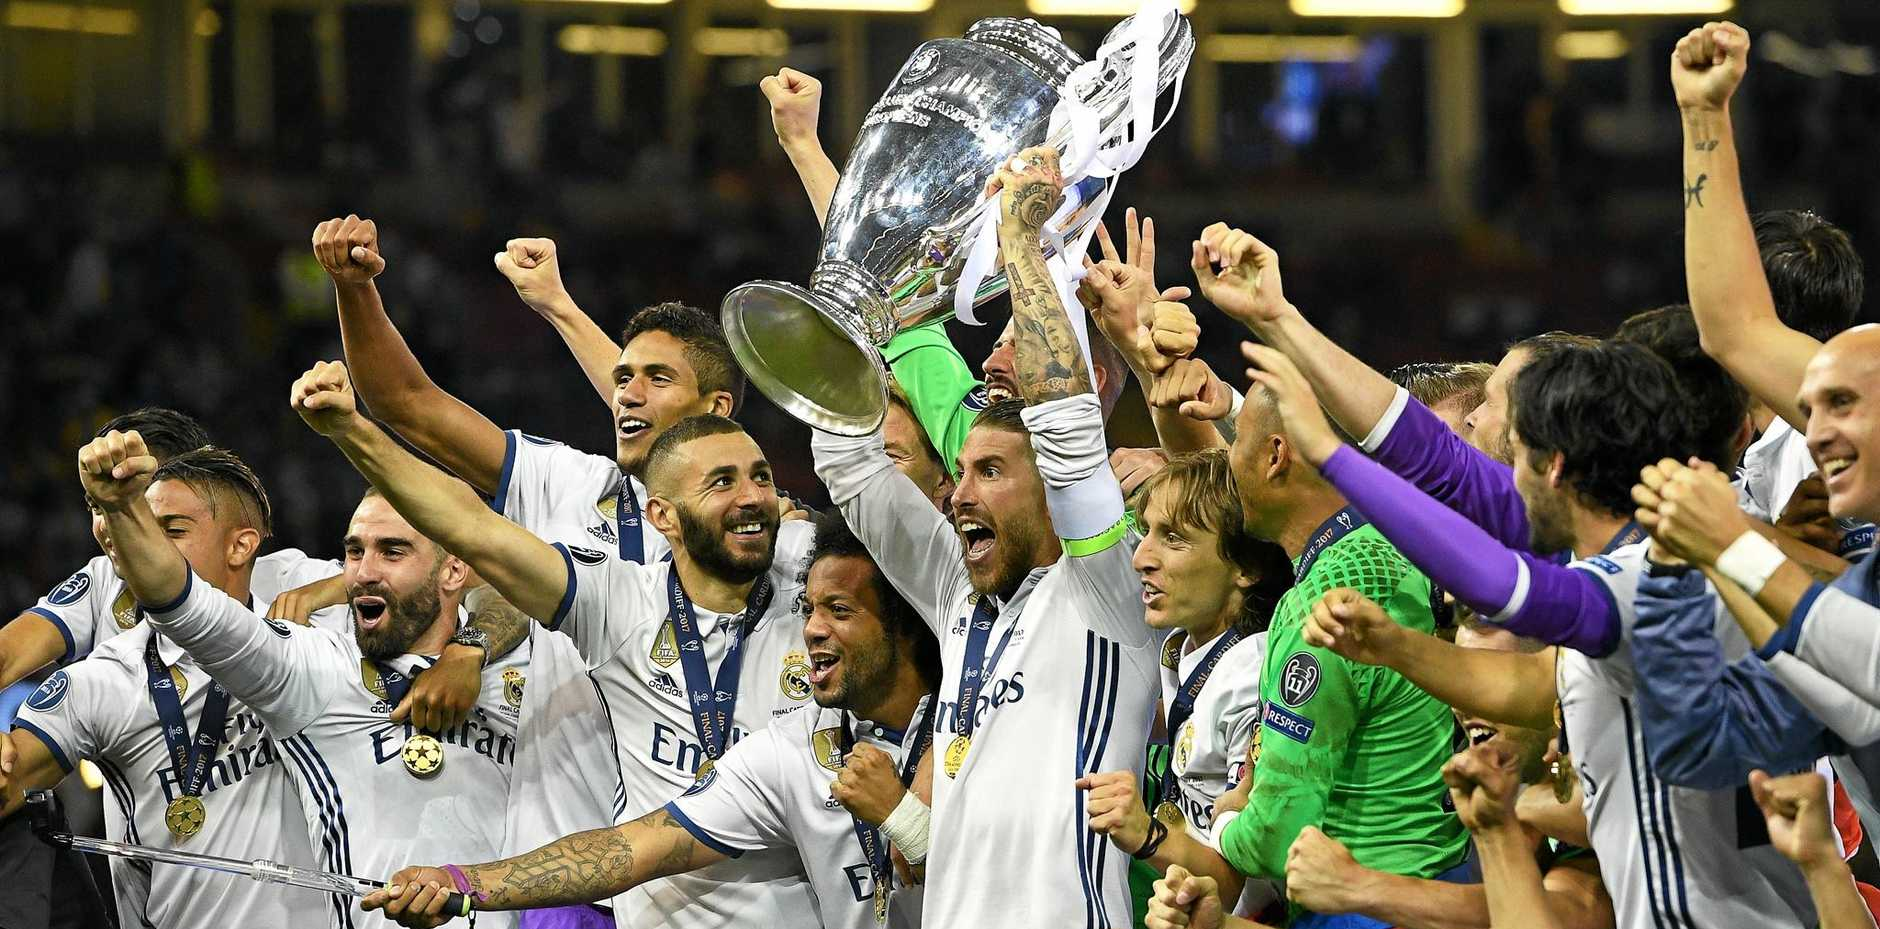 Real Madrid's captain Sergio Ramos (centre) lifts the trophy as his teammates celebrate after the UEFA Champions League final.